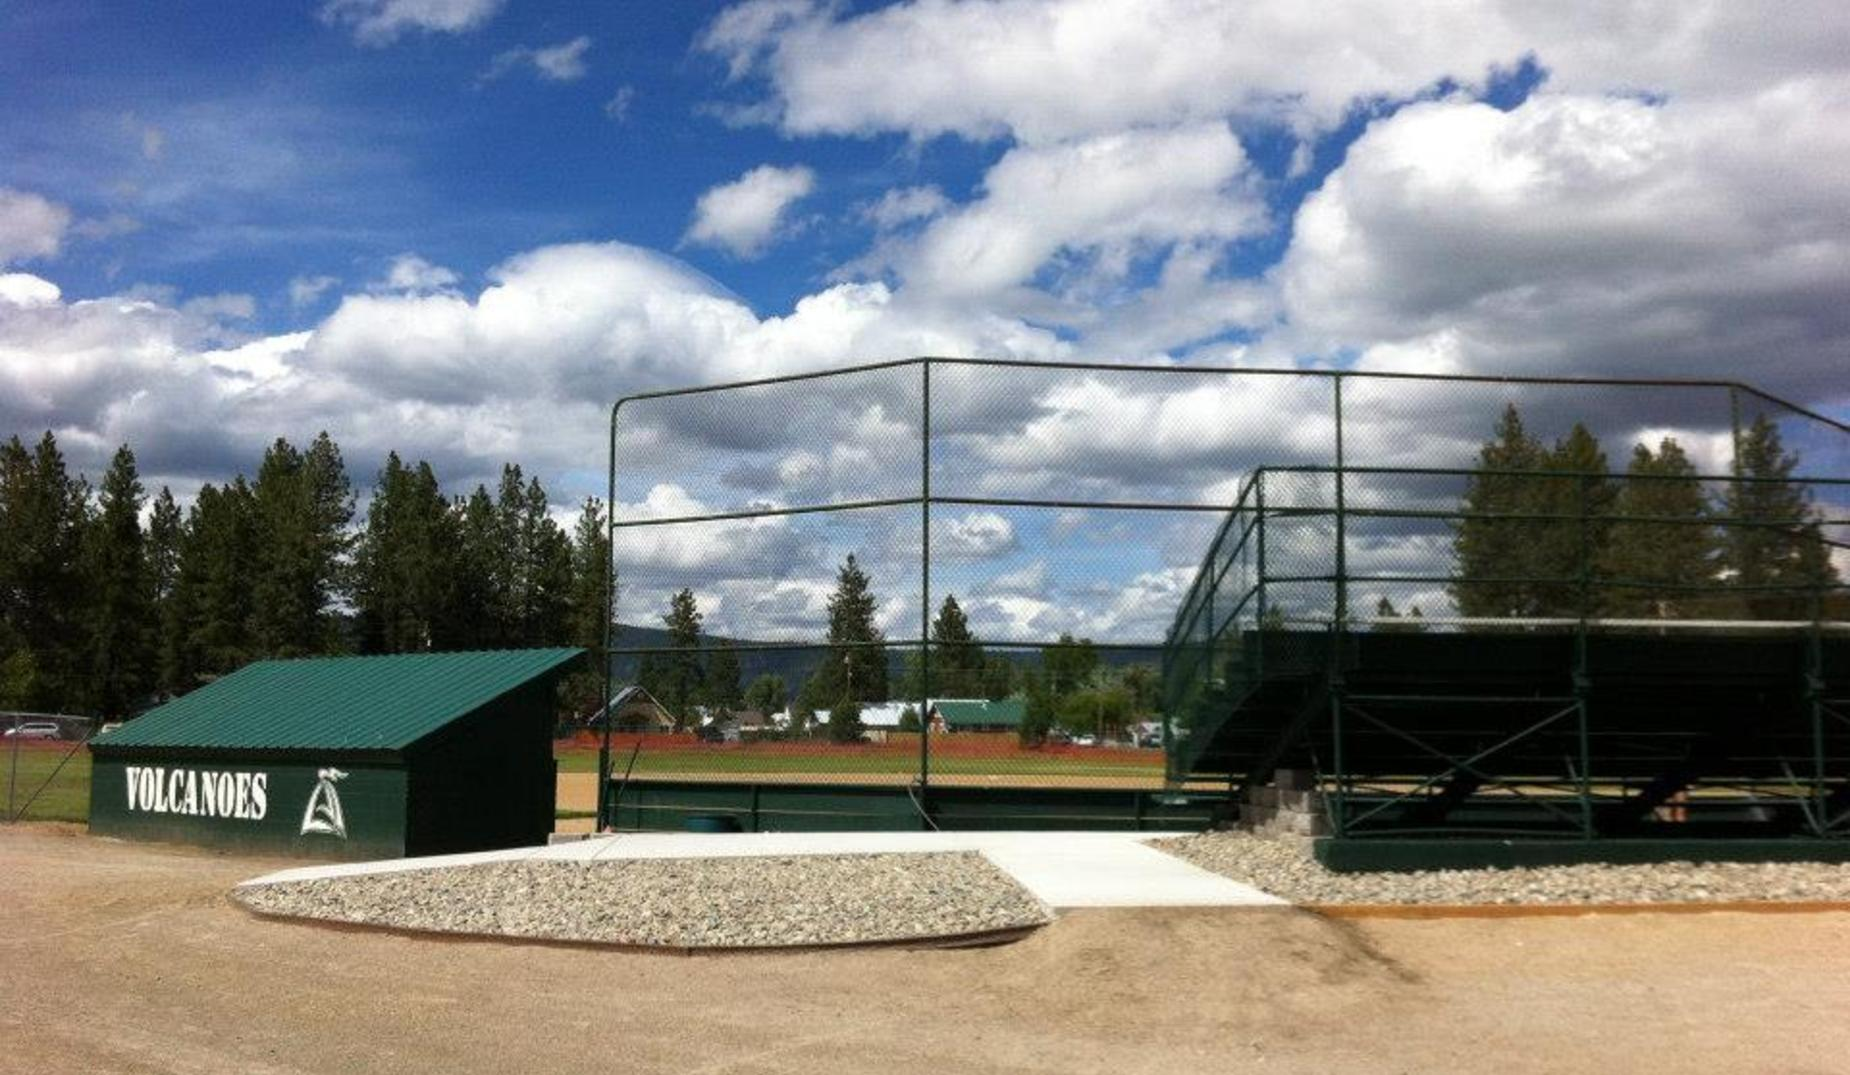 Volcanoes baseball dugout and stadium